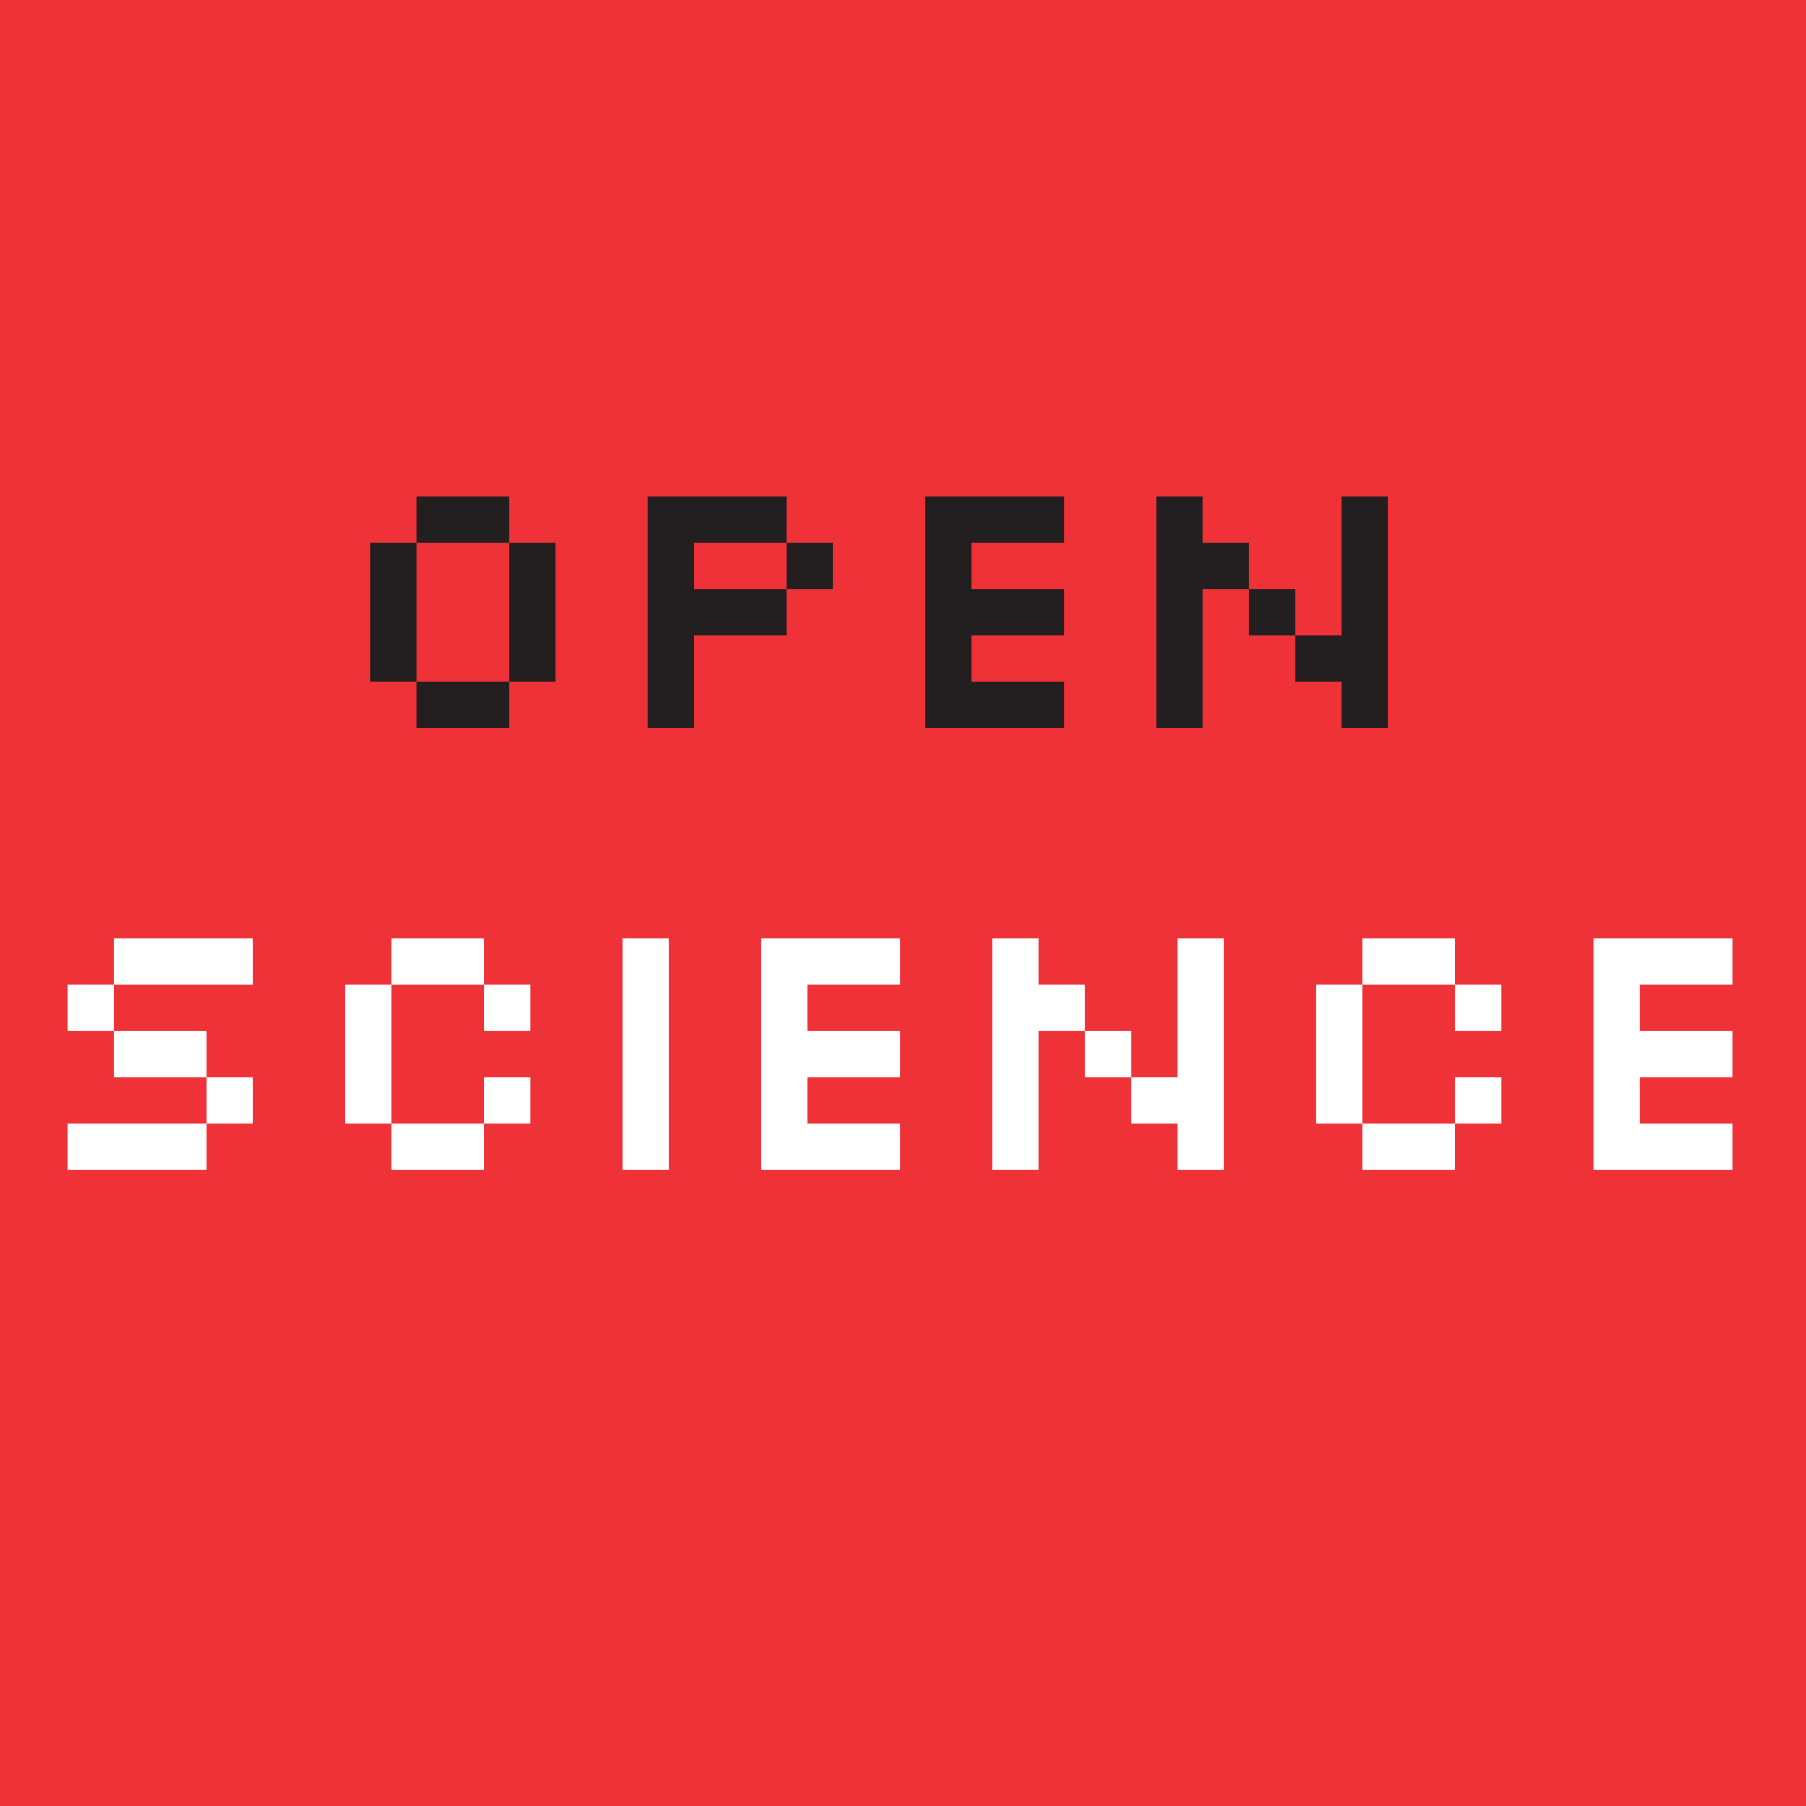 Rückblick: Monatlicher Open Science AG Call im April 2015